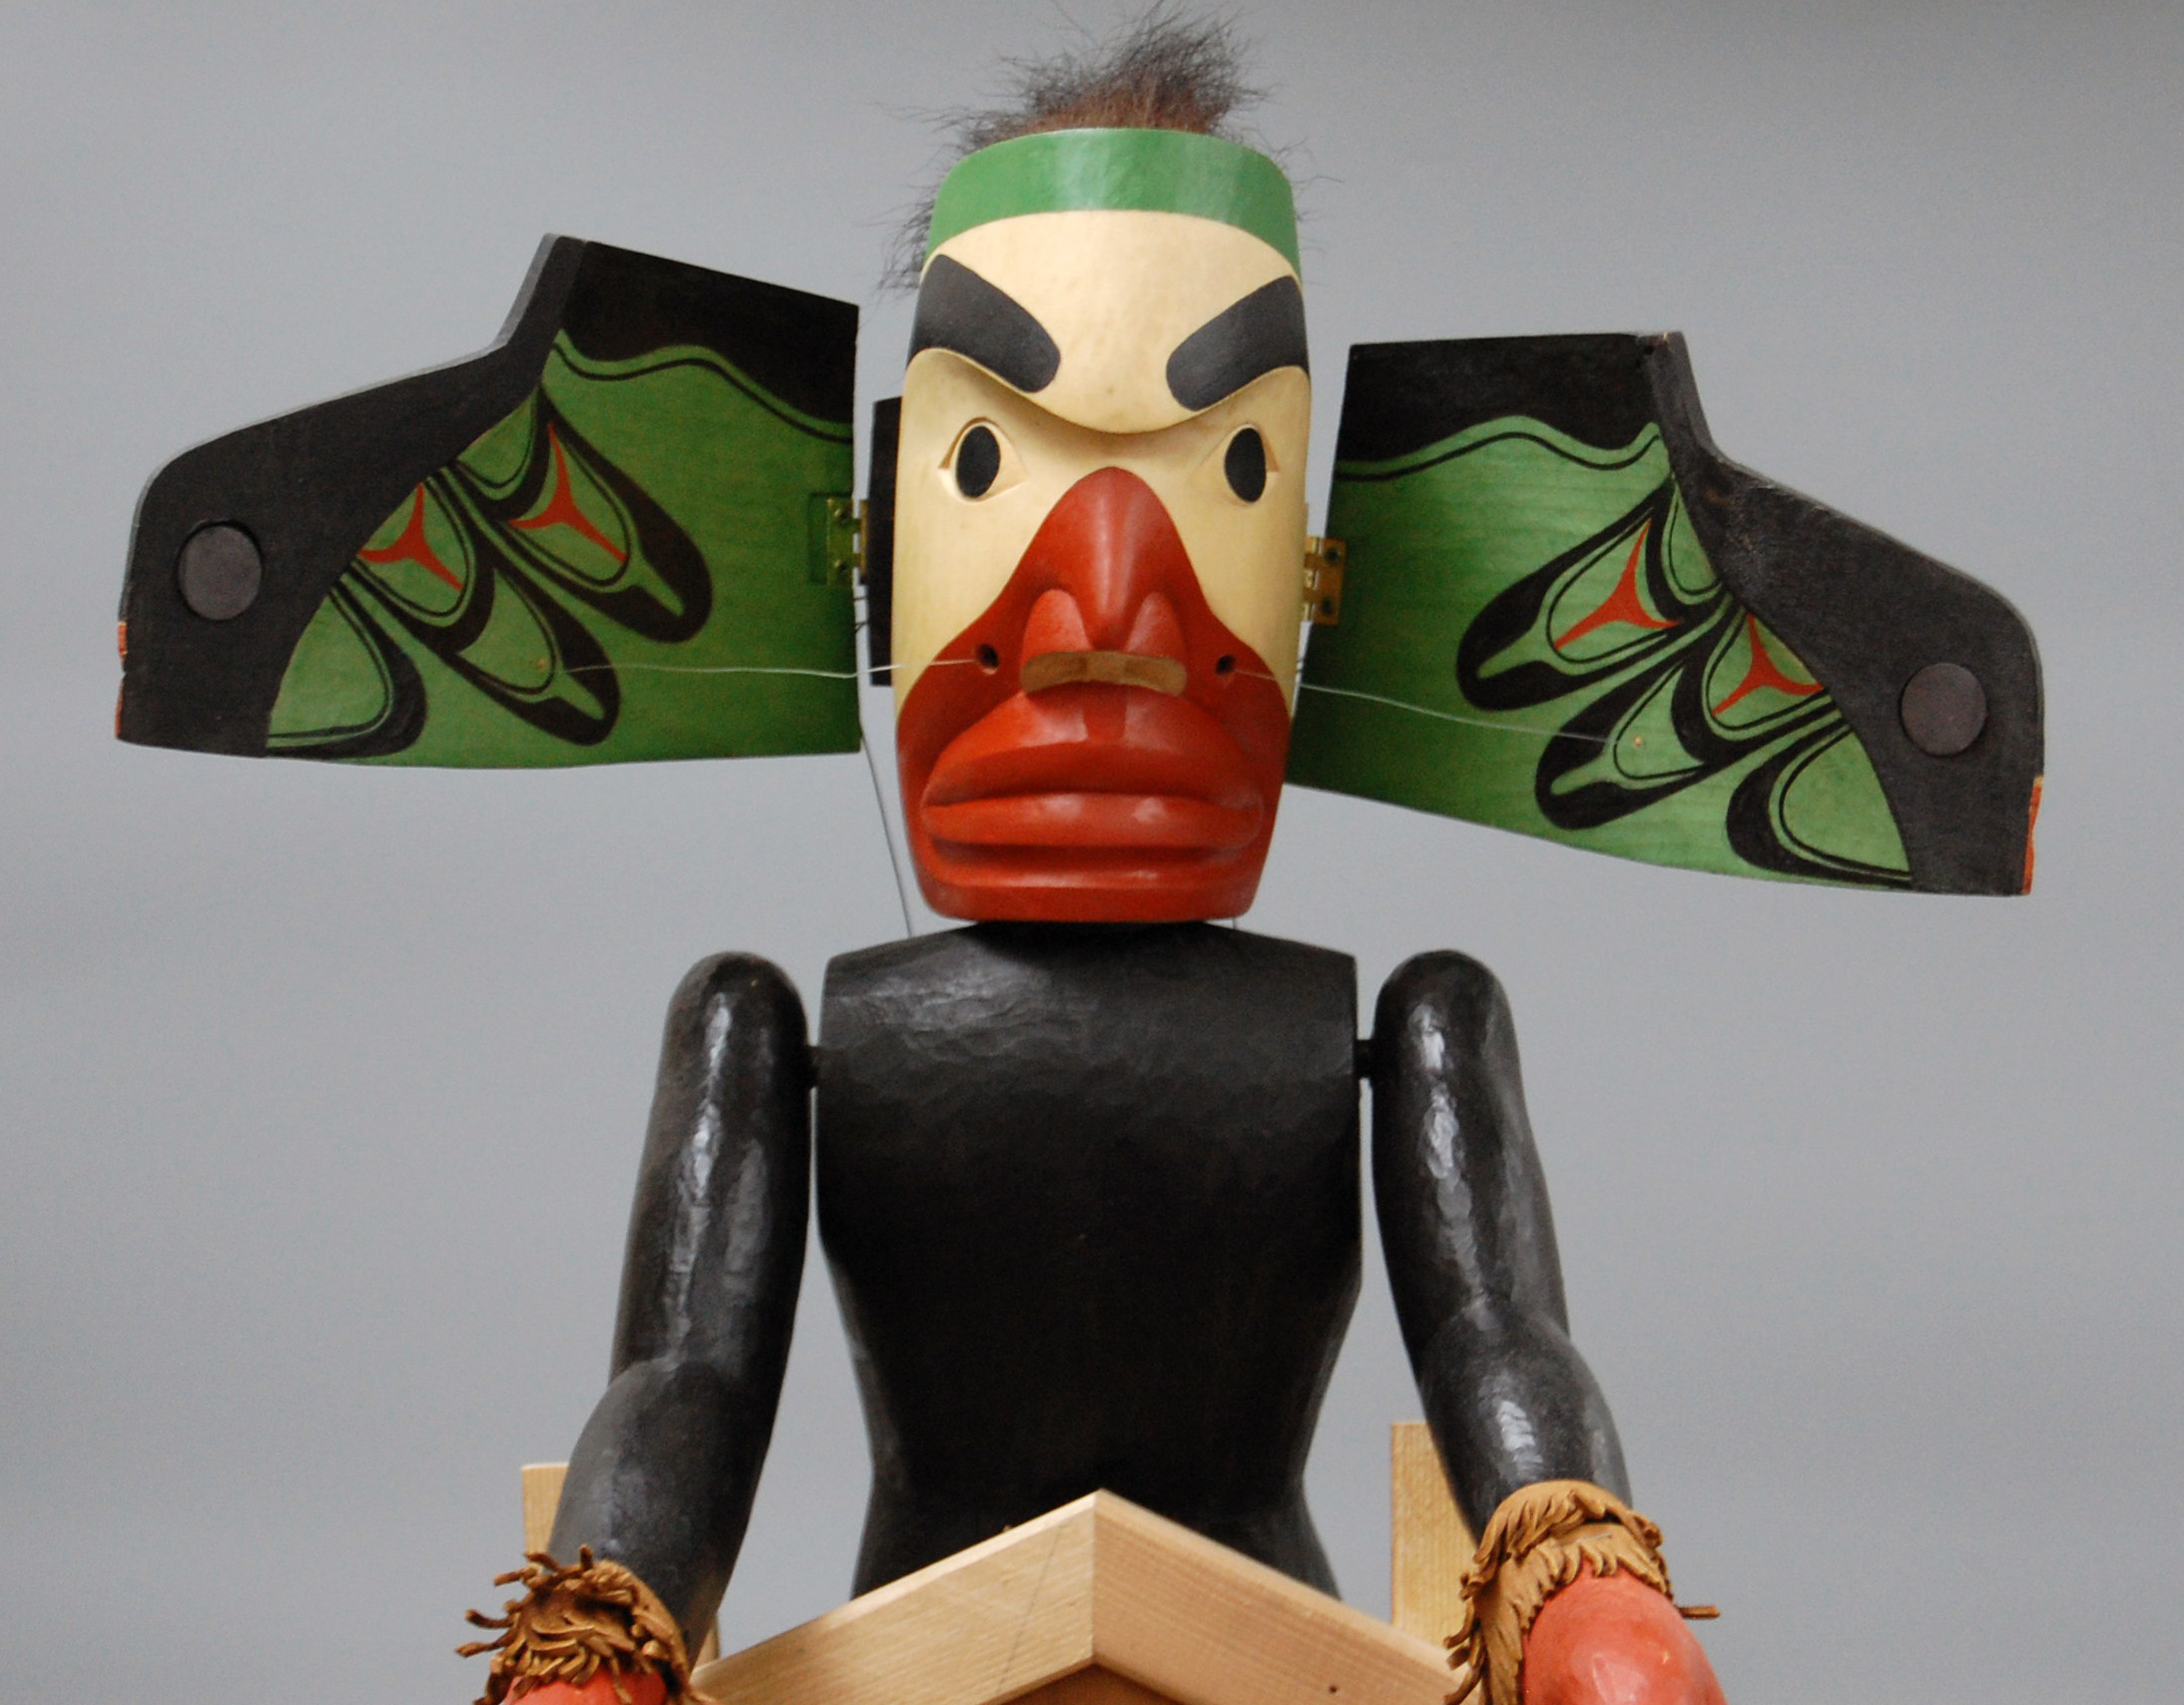 Transformation rod puppet of a raven by George David, a member of the Nuu-chah-nulth / Nuučaan̓uł people (Pacific Northwest, Canada). Head opens to reveal the wings of the raven. Photo courtesy of Center for Puppetry Arts